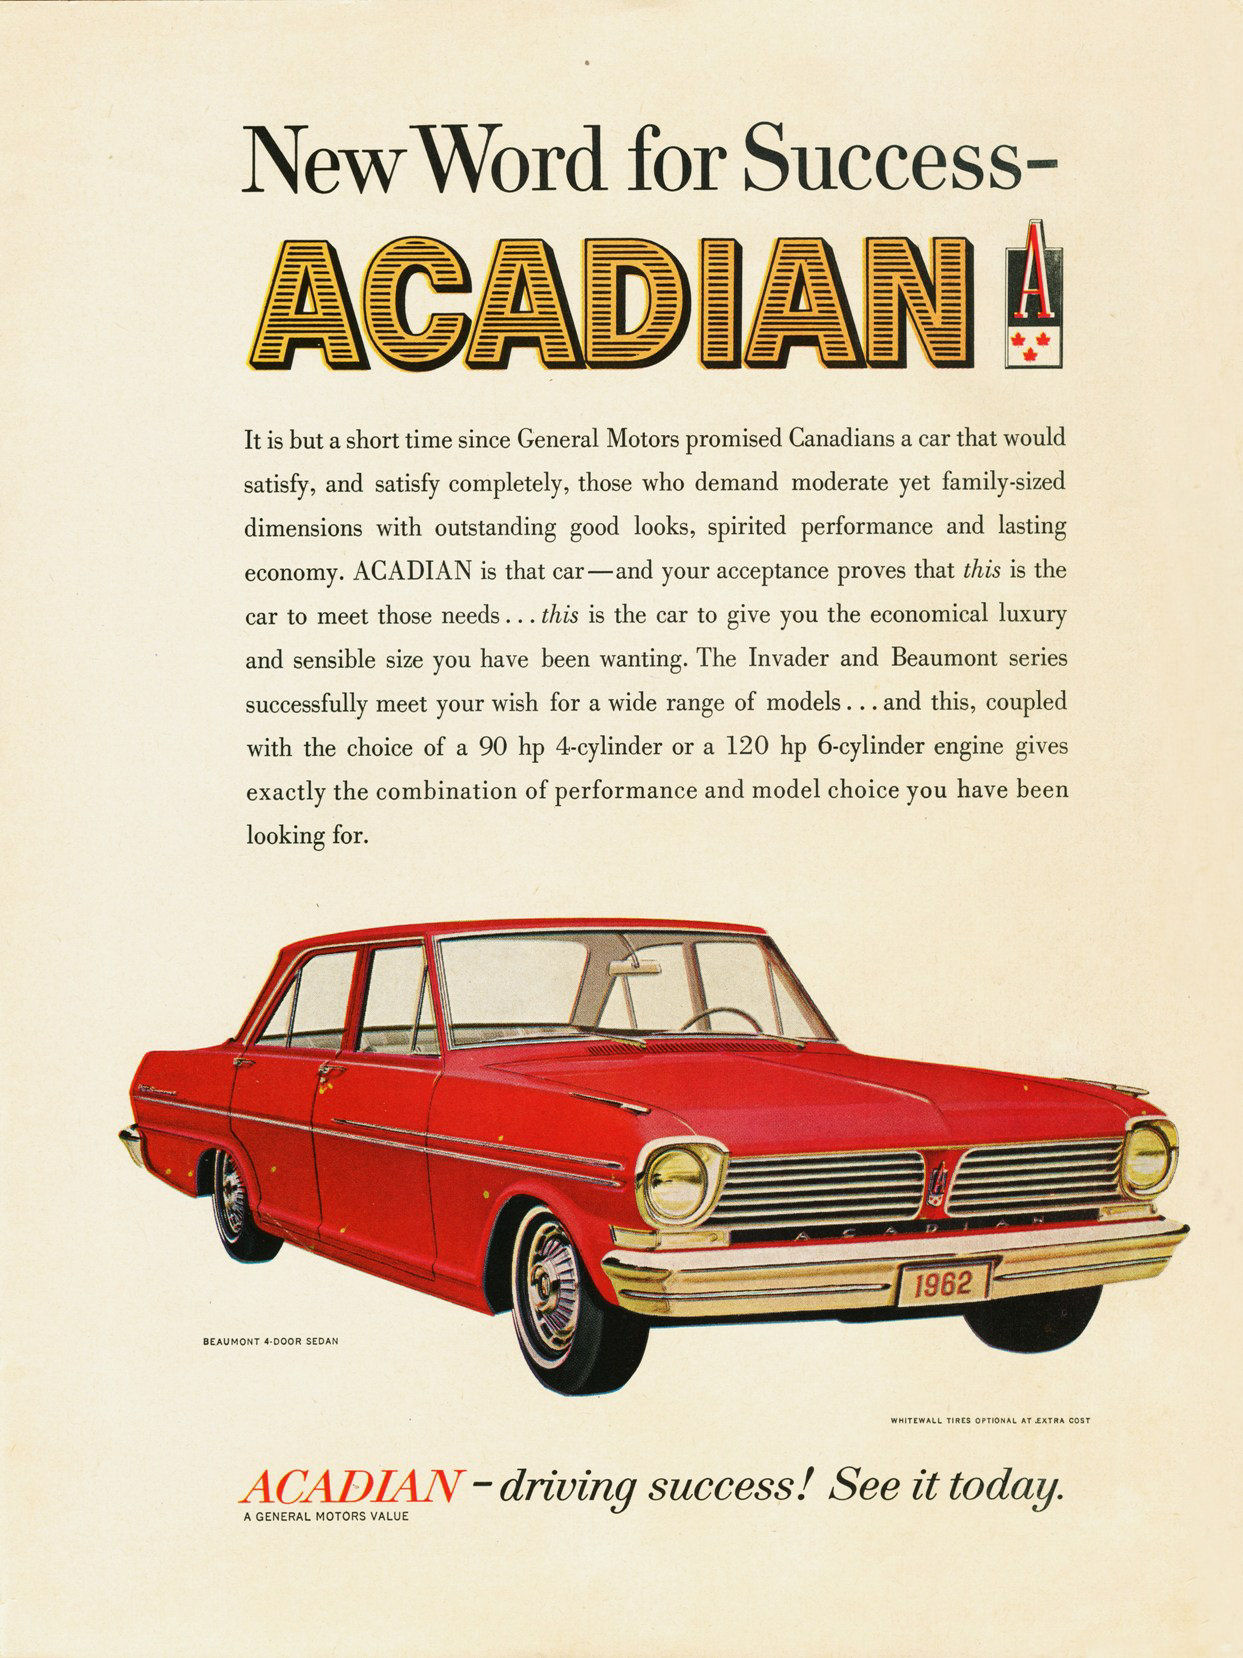 Acadiana Motors - impremedia.net